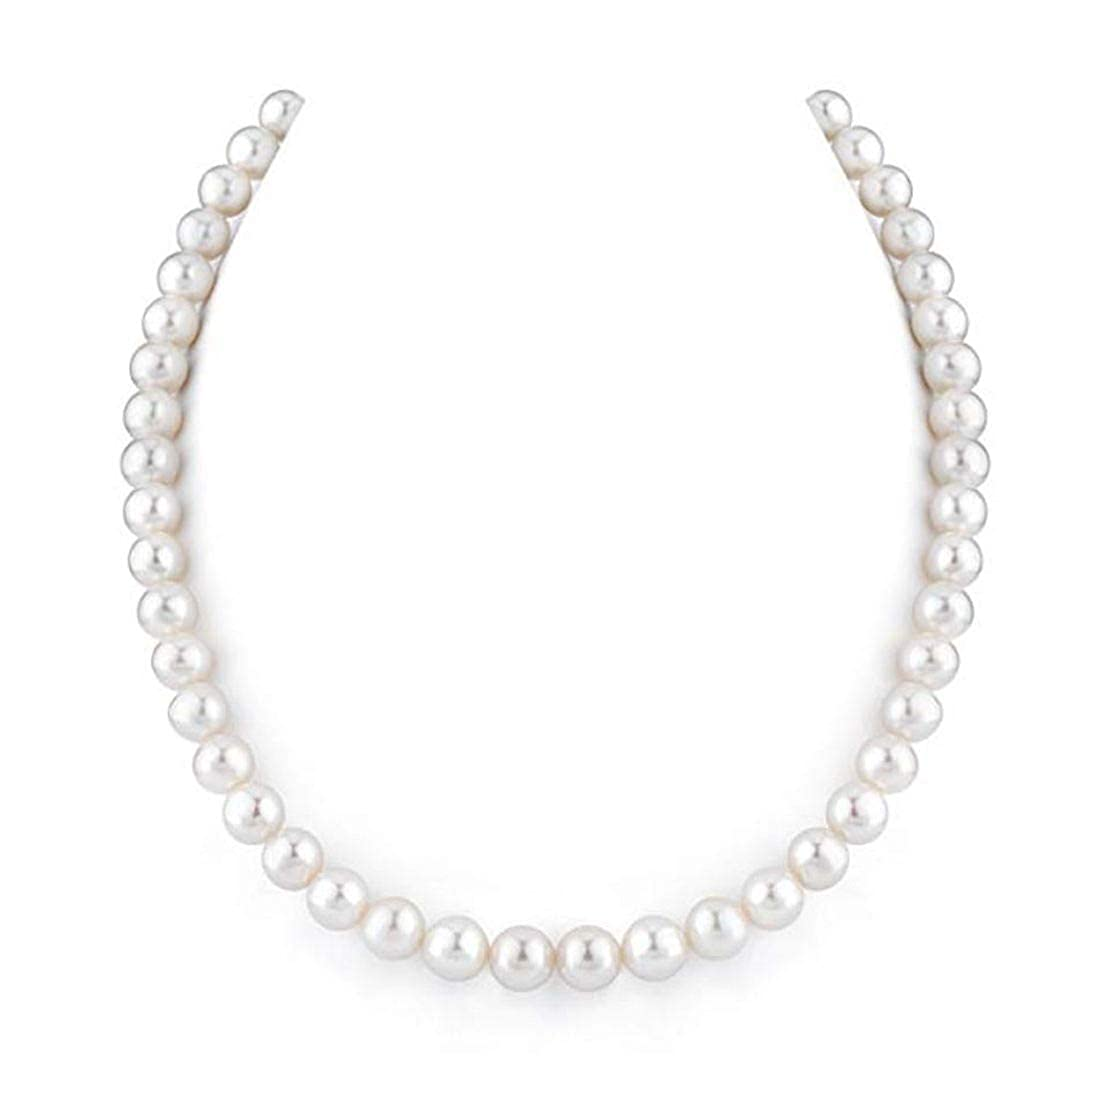 Natural A Quality Round White Cultured Freshwater Pearl Necklace for Women Anniversary Birthday Mother's Gifts Adabele